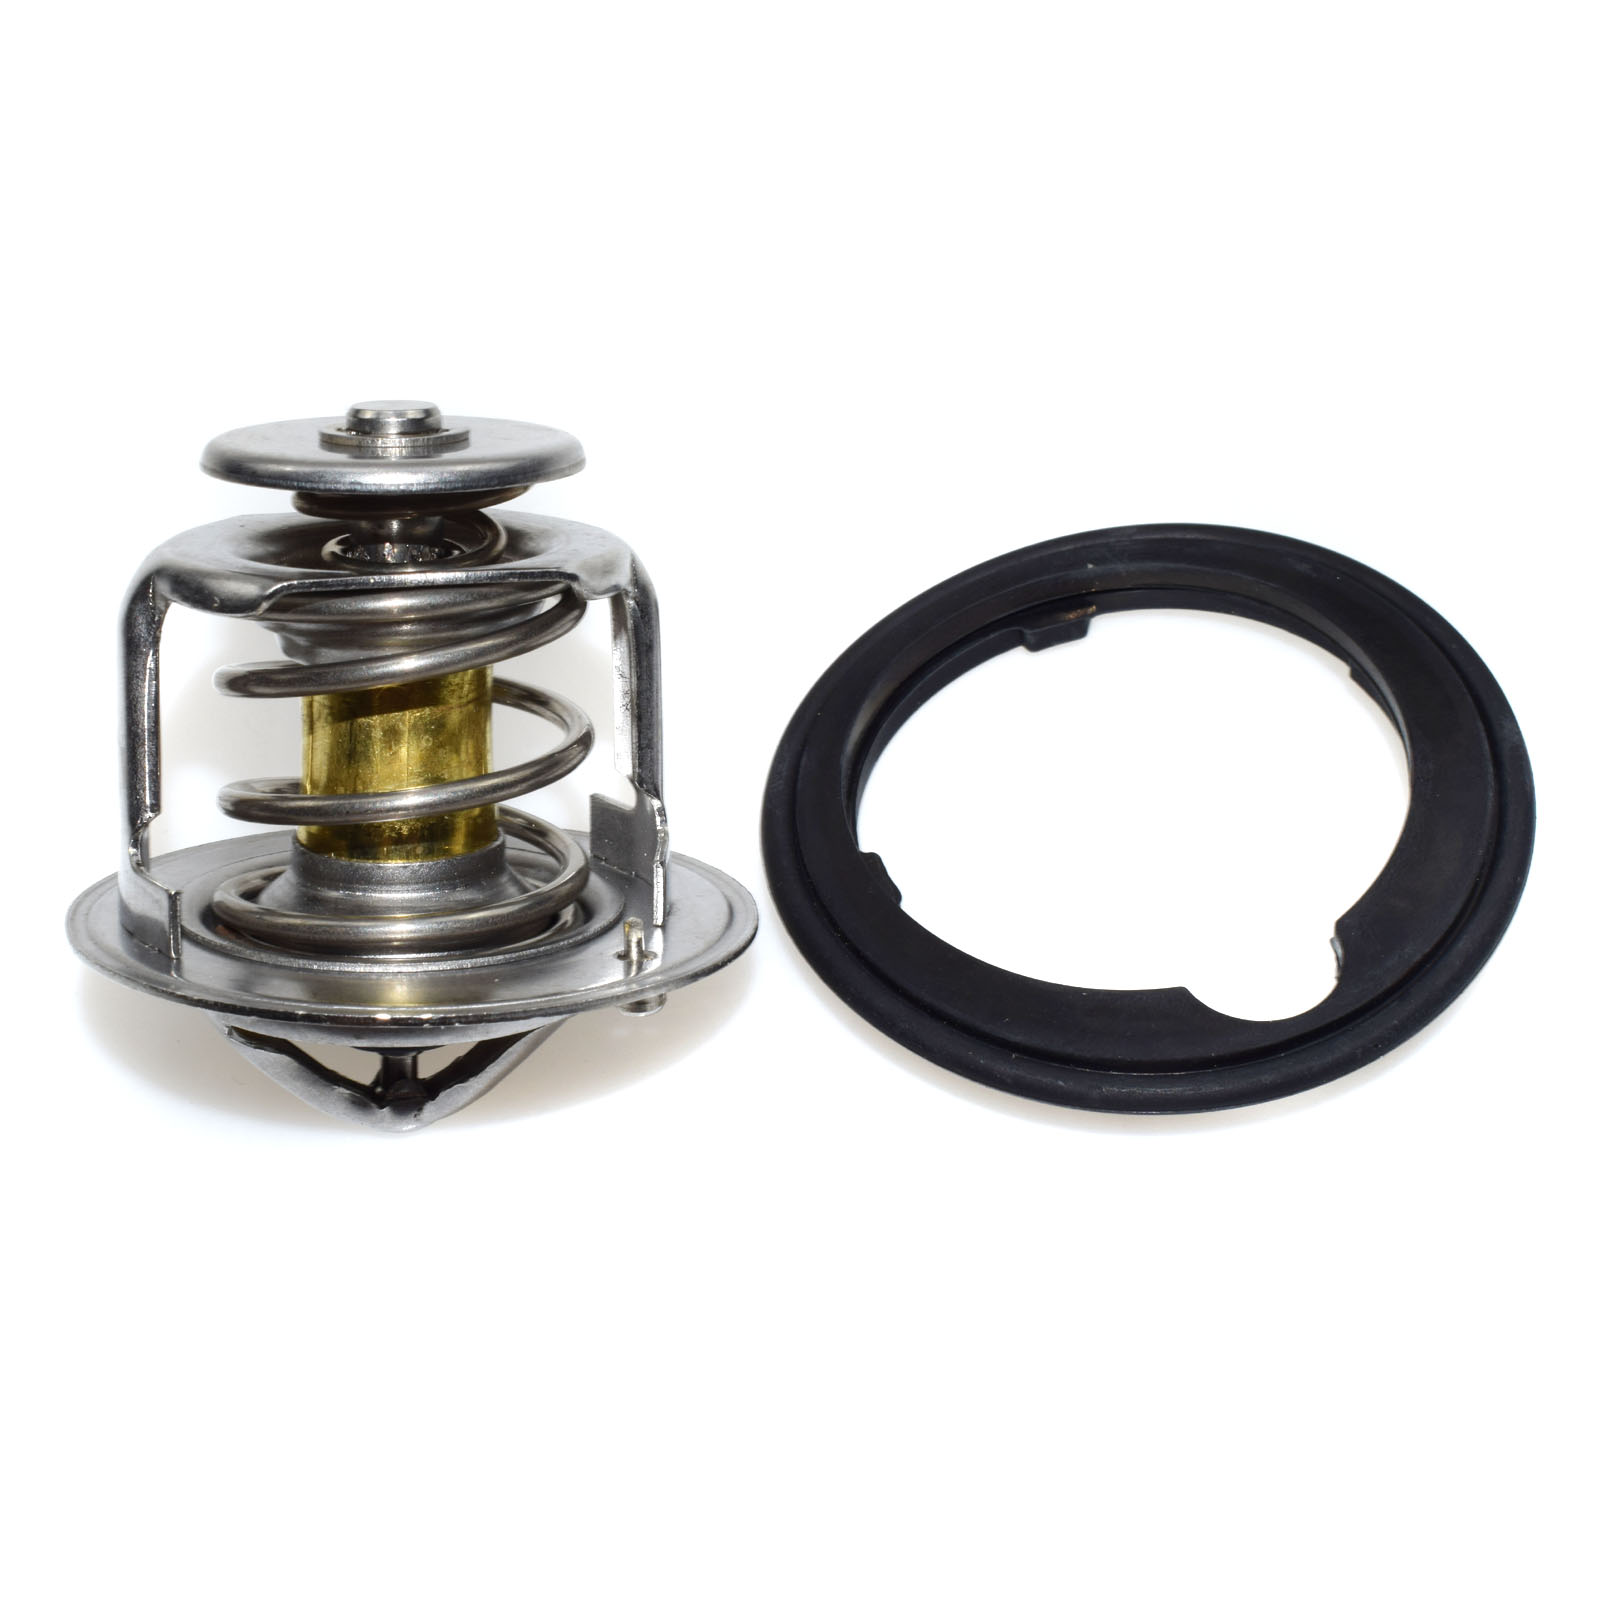 New Racing Thermostat 19301-P08-305 For Honda Accord Civic